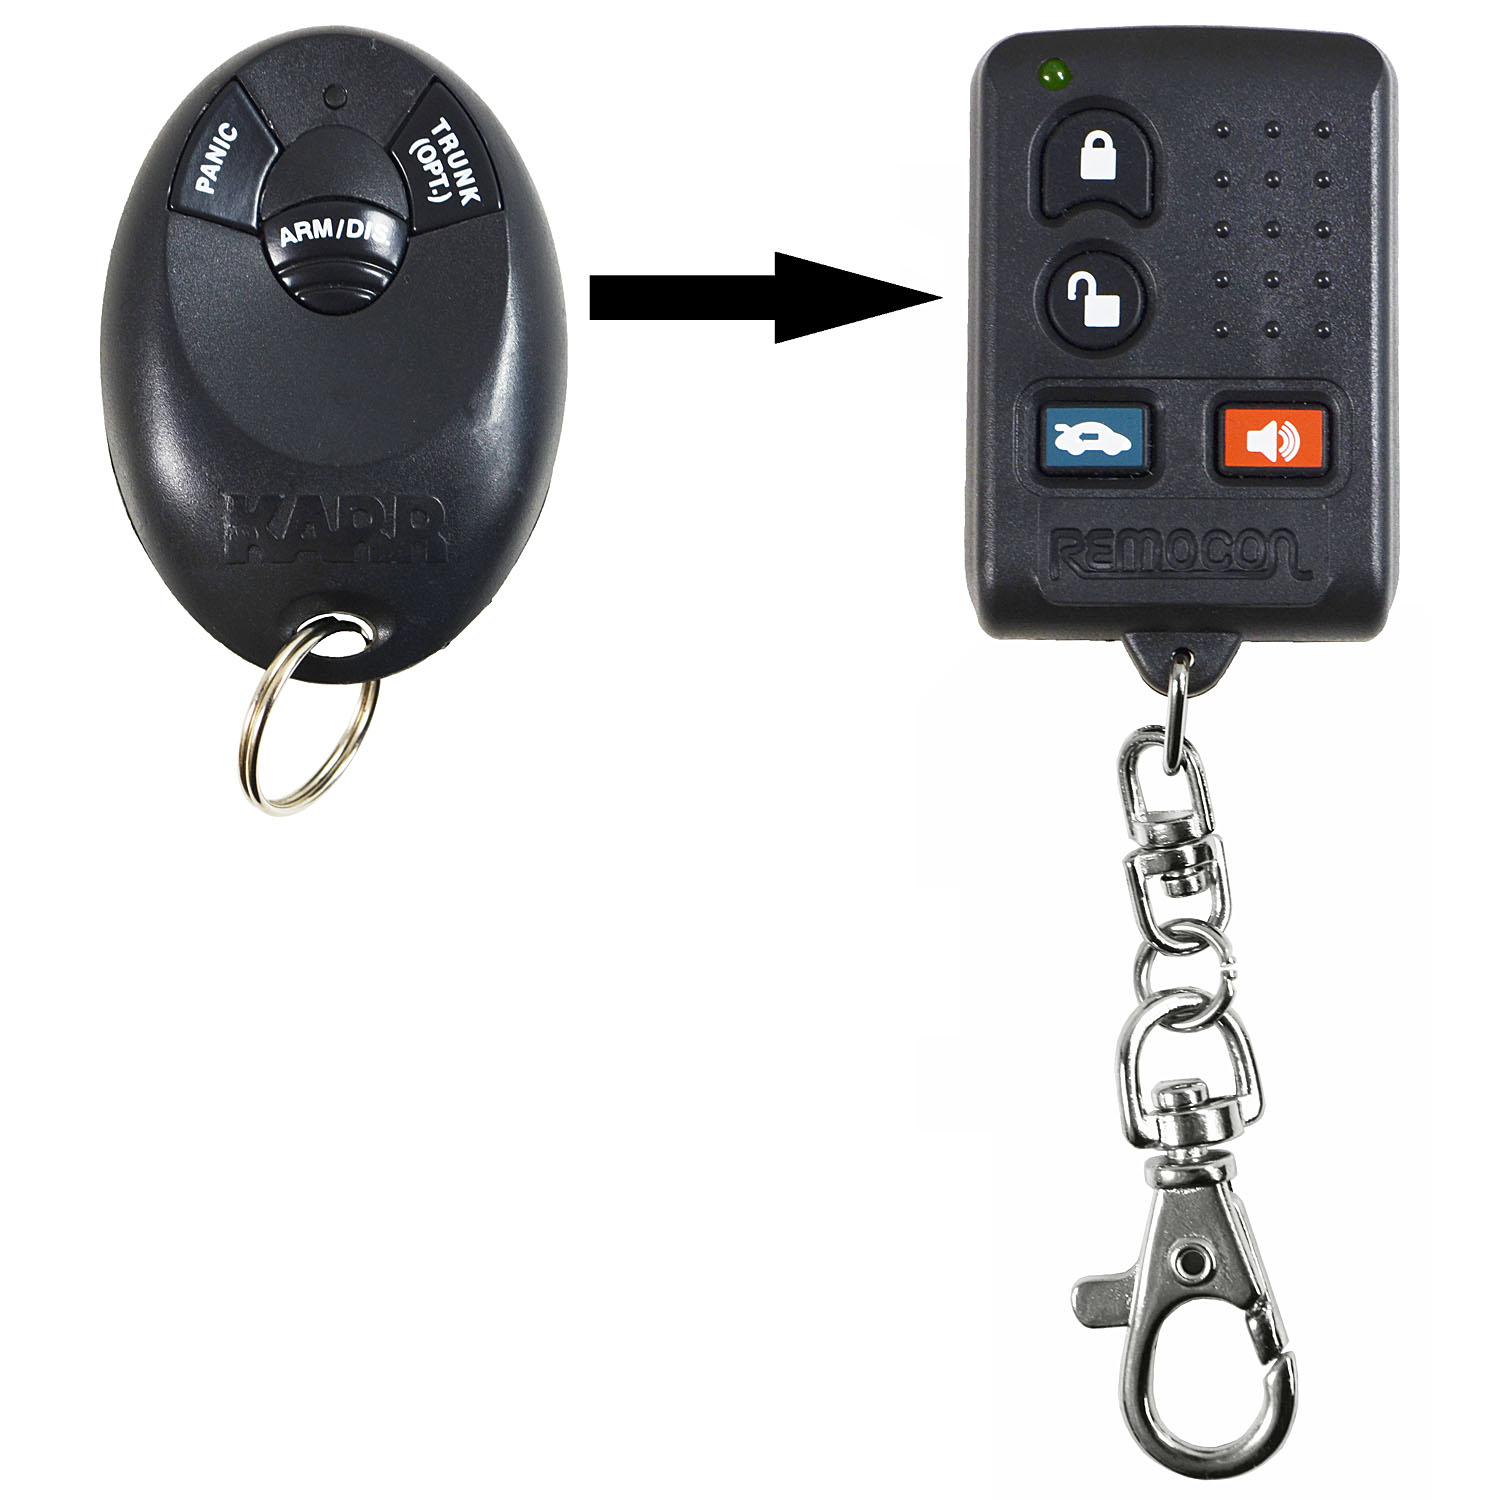 New Aftermarket Remote Key Keyless Entry Fob Alarm Car For